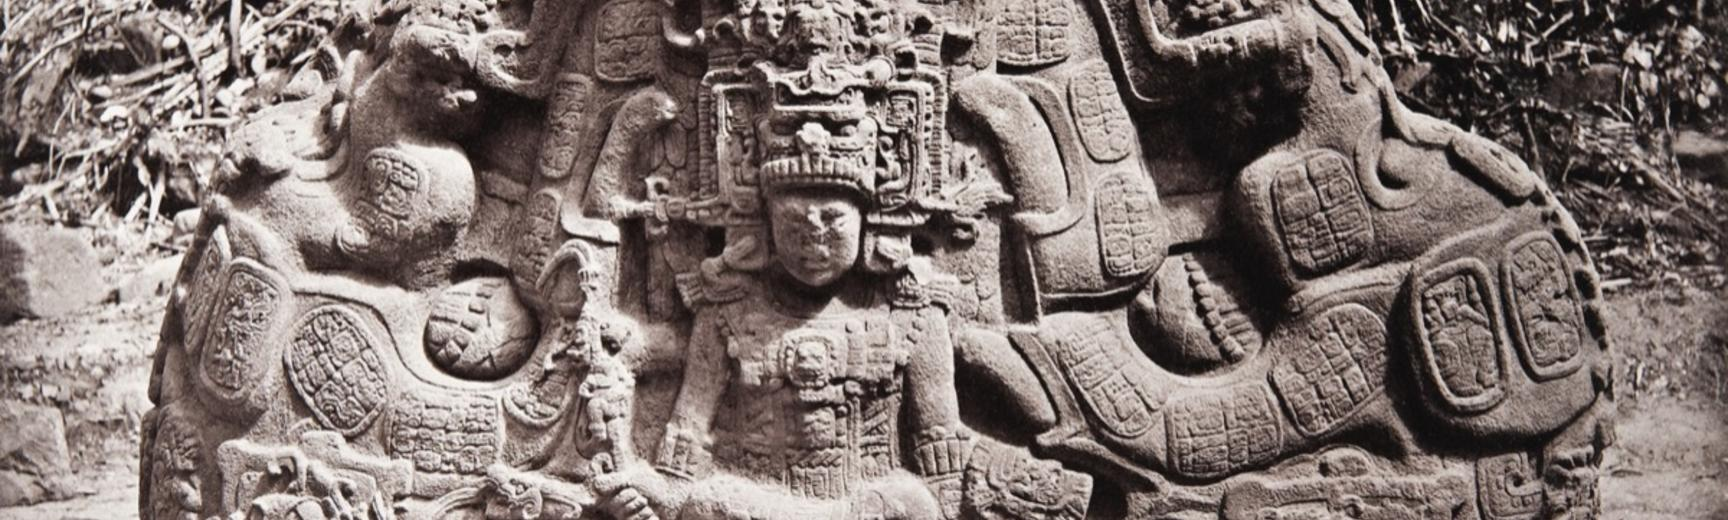 Zoomorph P (also known as Monument 16), north face, dated AD 795. This massive stone carving, now understood to represent the Cosmic Monster of Maya mythology, was known by Alfred Maudslay as the 'Great Turtle', and can be seen marked on his map of the Qu